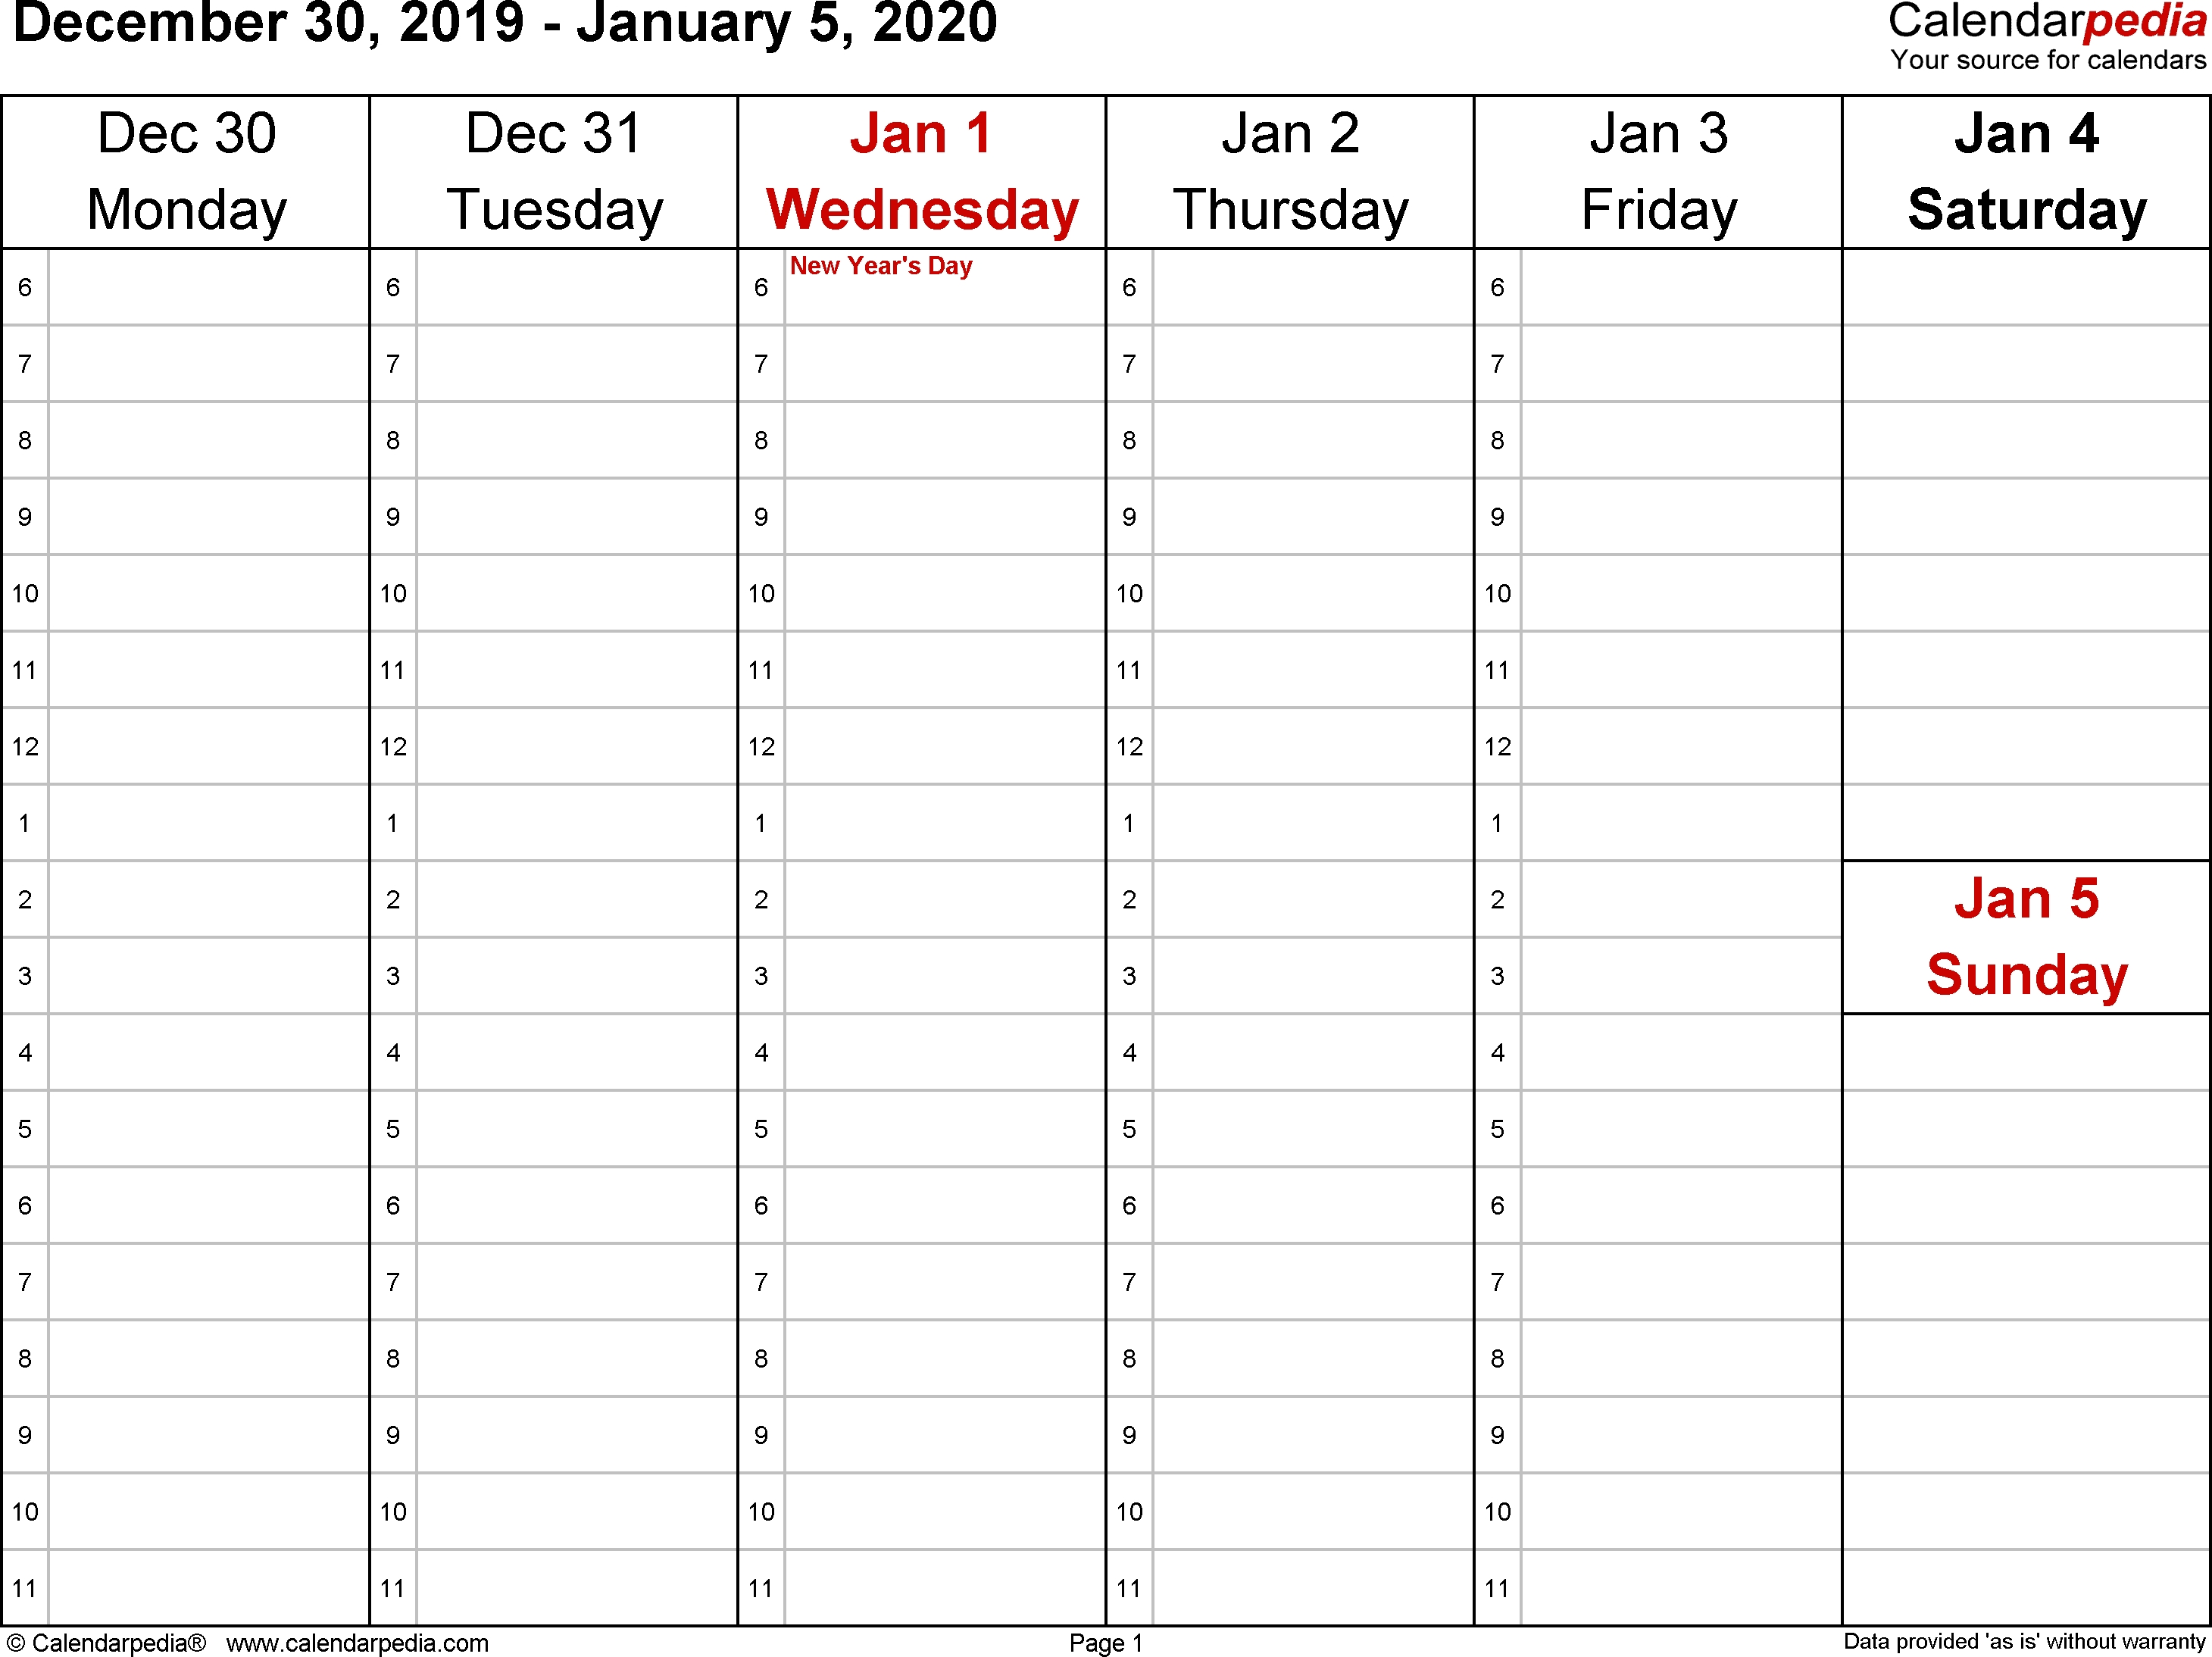 Weekly Calendars 2020 For Word - 12 Free Printable Templates for Calender 2020 With Space To Write